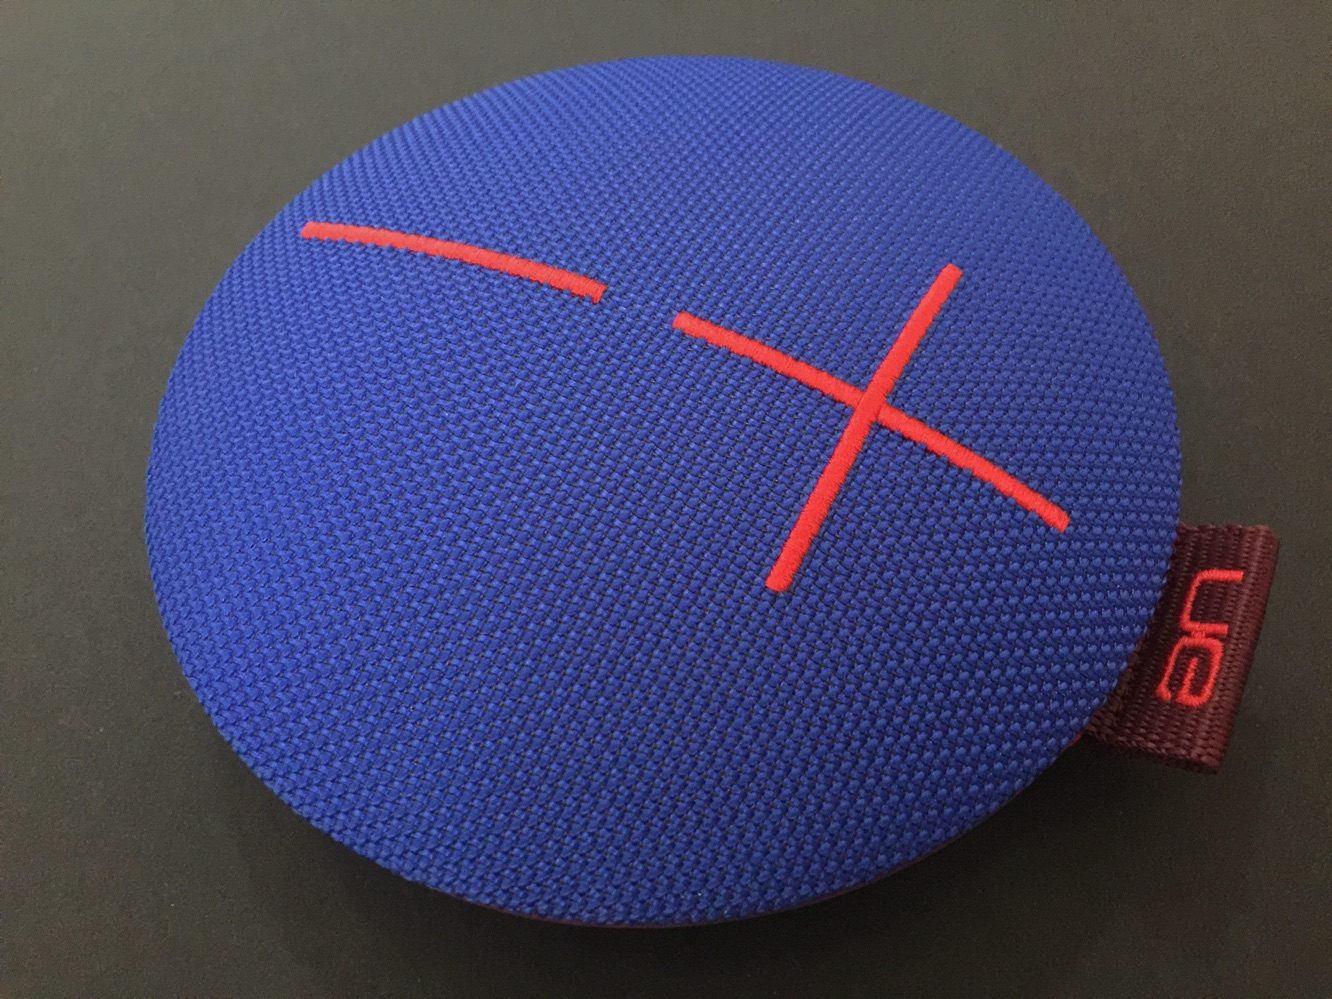 Review: Ultimate Ears UE Roll Portable Bluetooth Speaker